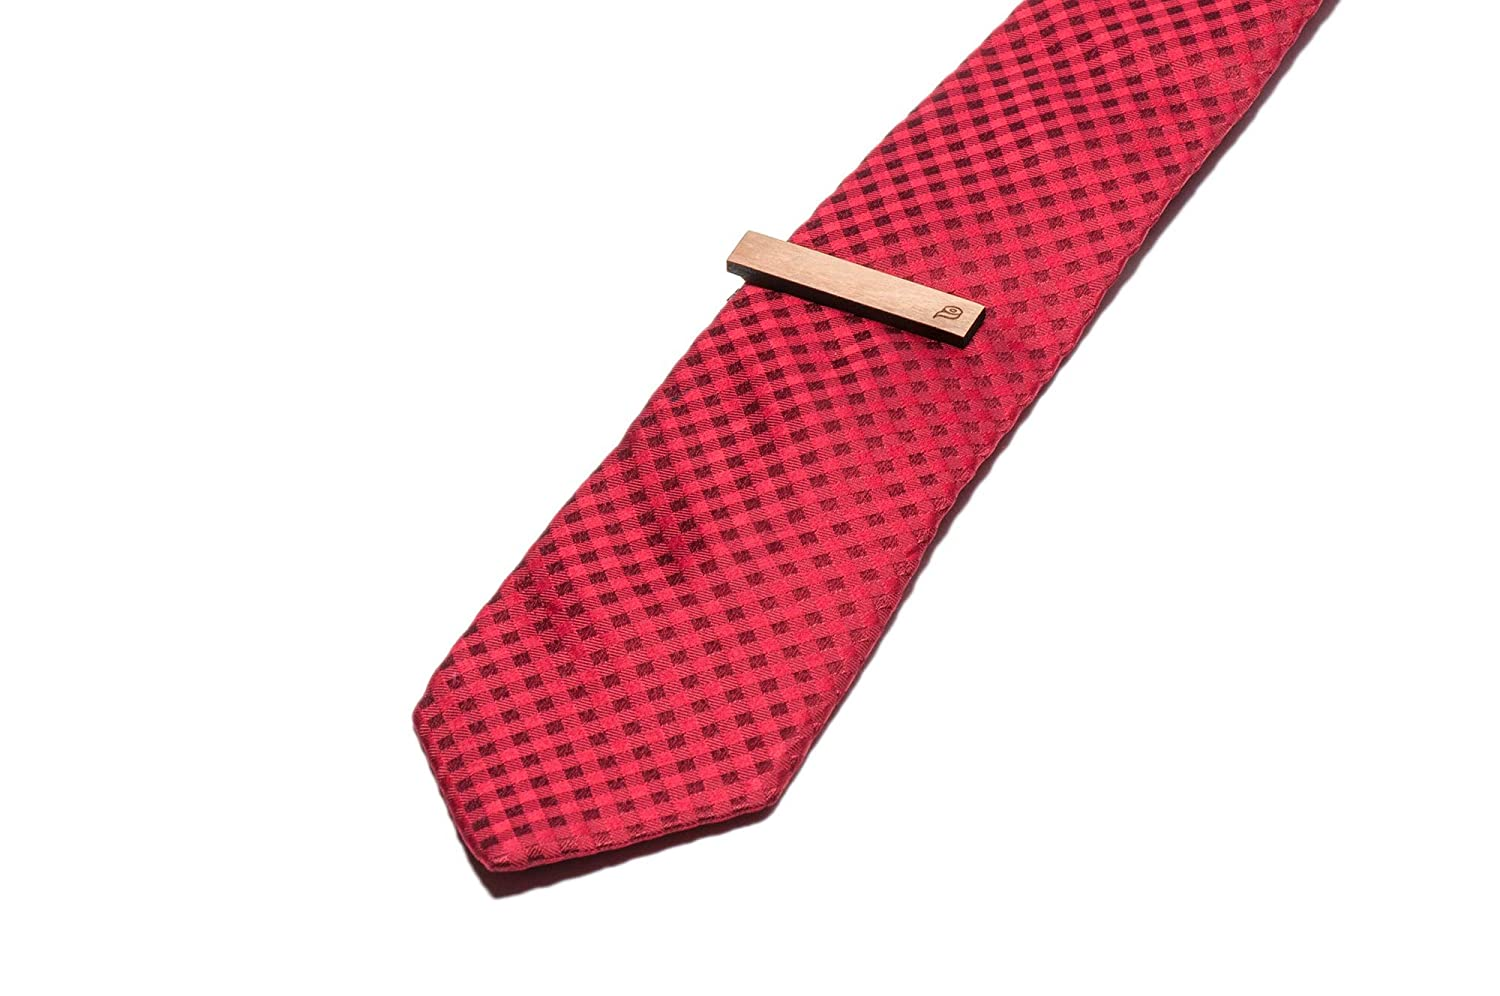 Cherry Wood Tie Bar Engraved in The USA Wooden Accessories Company Wooden Tie Clips with Laser Engraved Insulating Tape Design